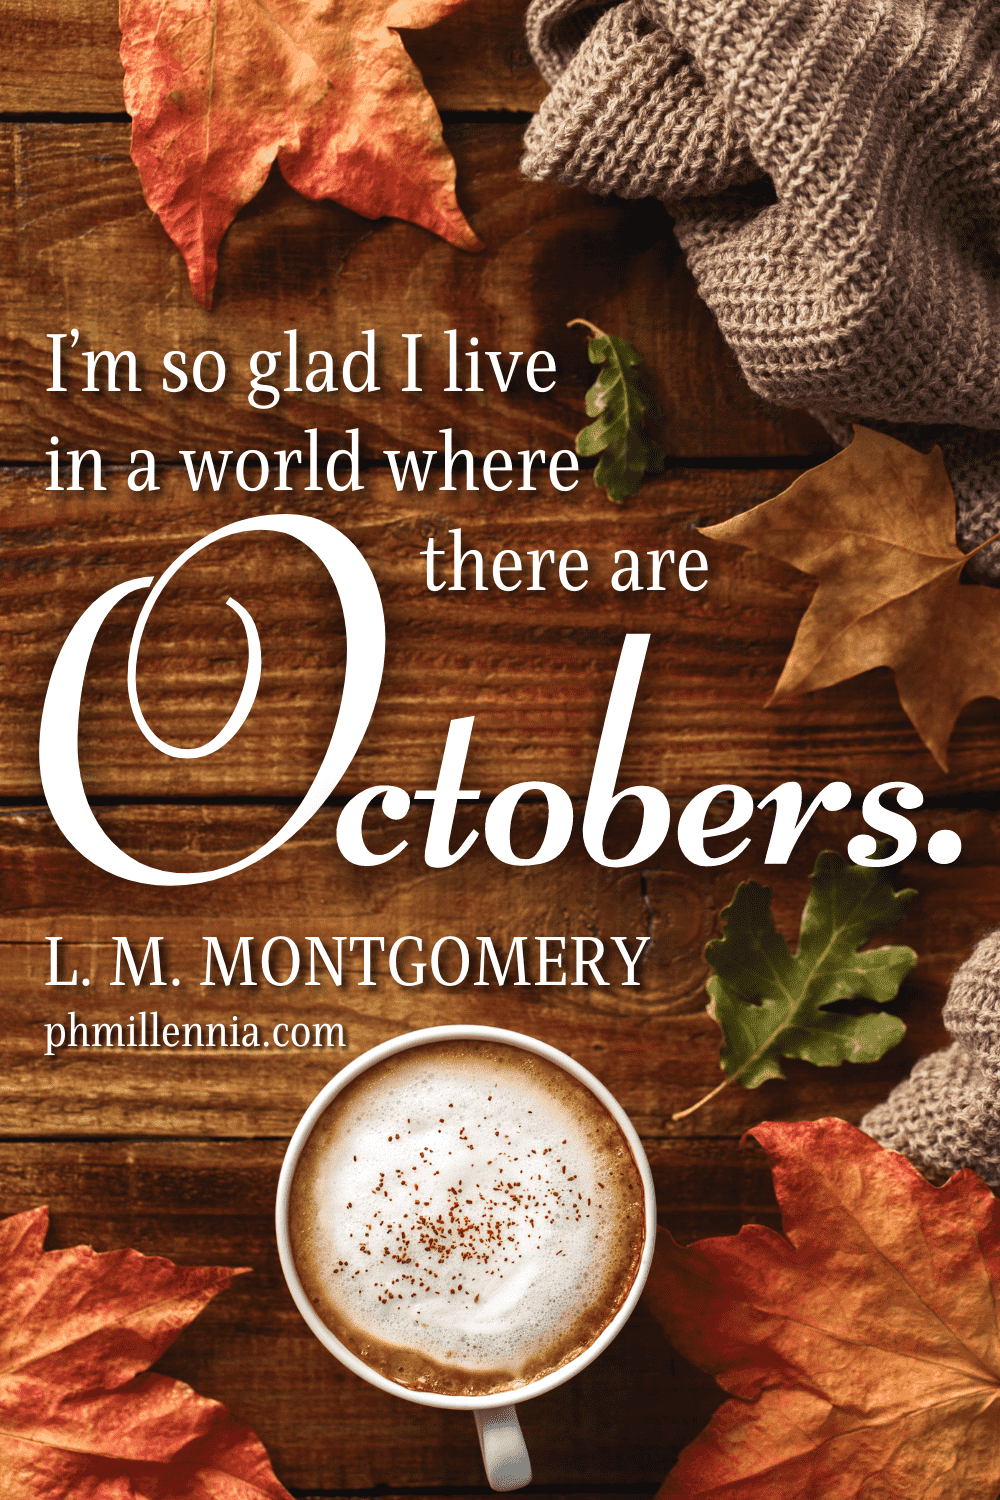 """A graphic featuring an autumn quote/fall saying over an image of a cup of hot cocoa, sweater cloth, fall/autumn leaves, and other fall/autumn-related items arranged on a wooden surface, designed as a Pinterest Pin for the article """"199 Autumn Quotes to Fall Deeply and Spectacularly in Love With"""" on phmillennia.com"""